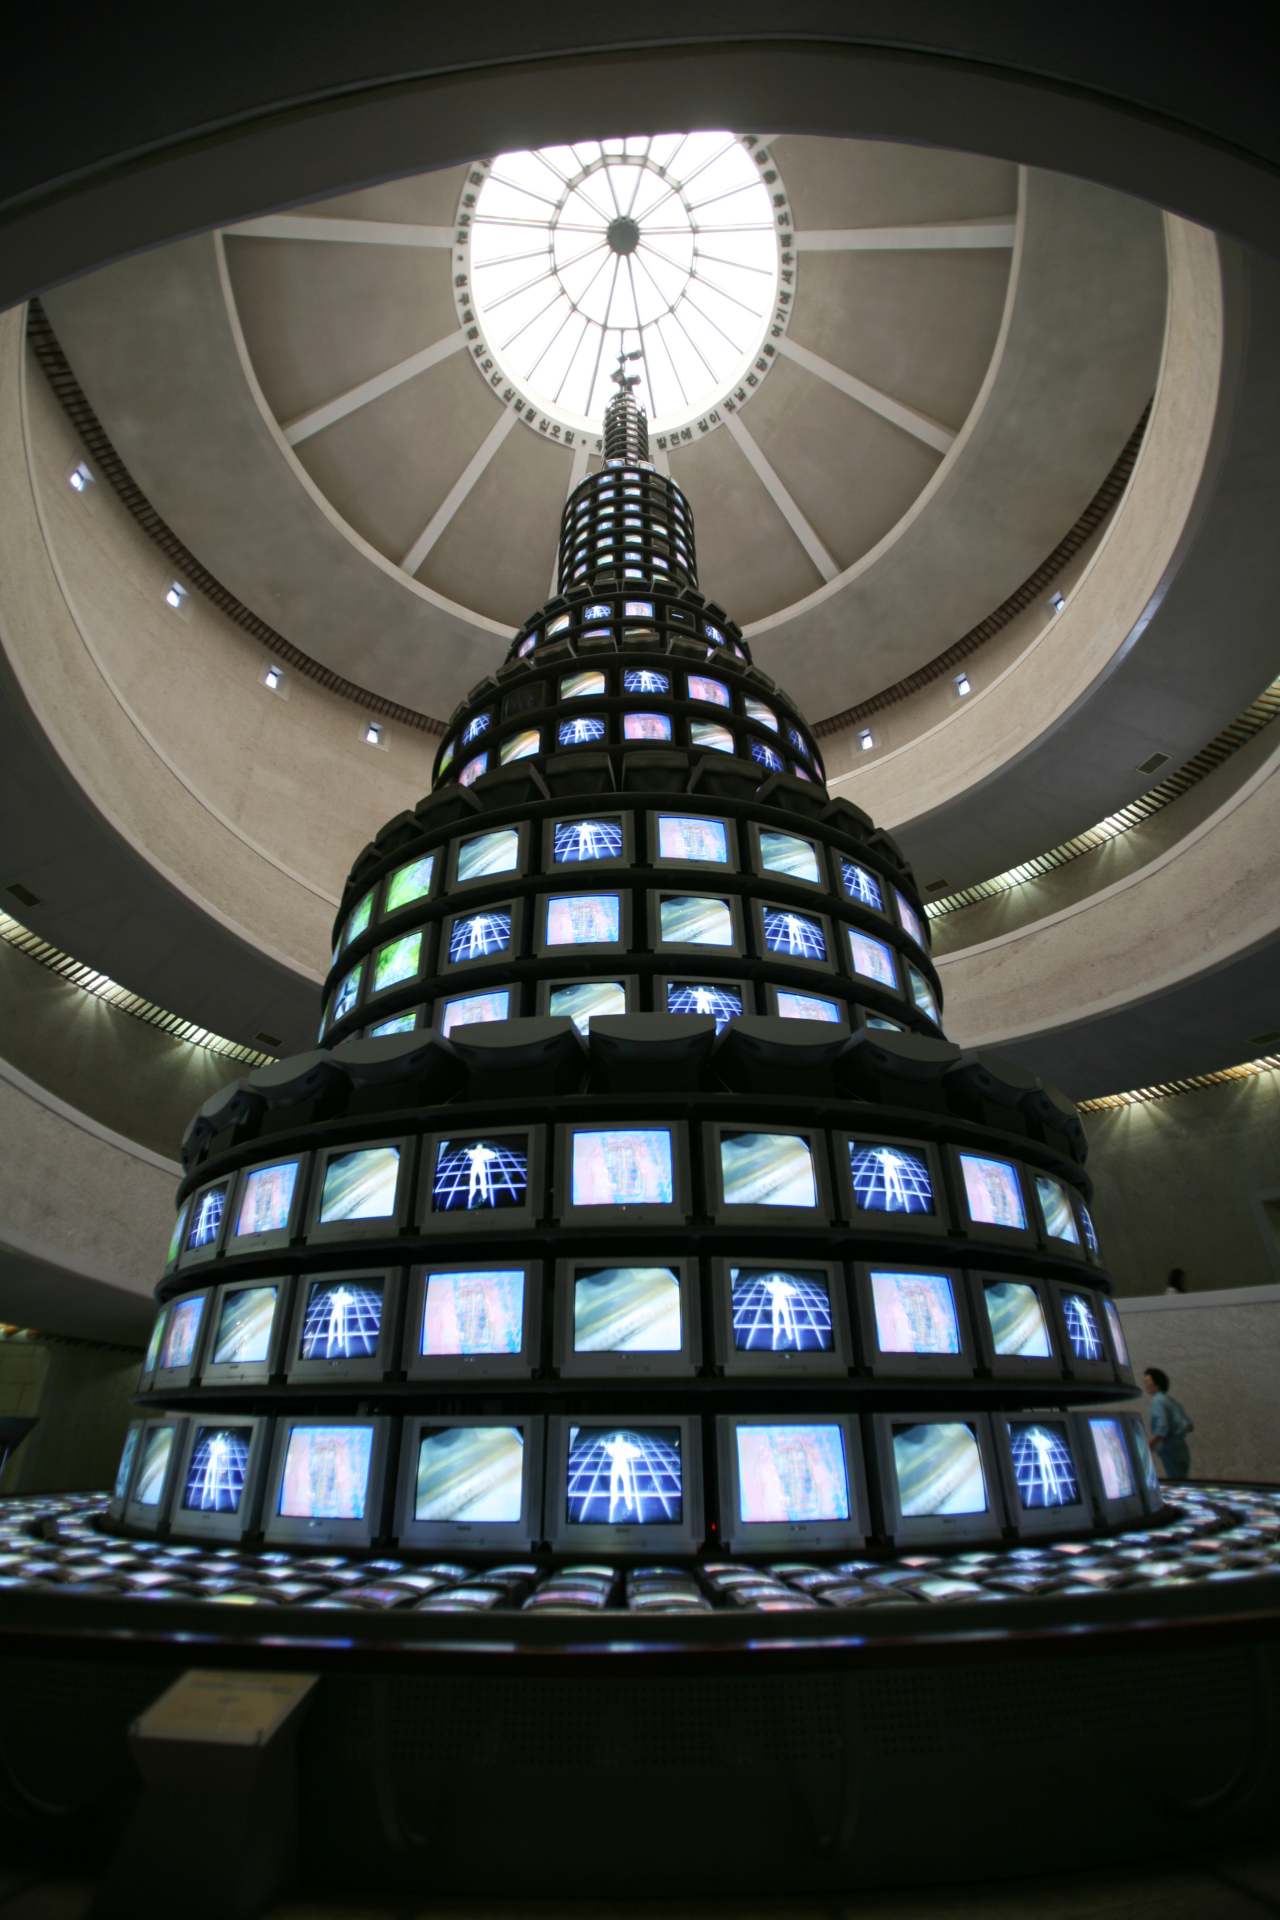 """Paik Nam-june's """"The More the Better"""" (1988) at MMCA Gwacheon. The 18.5-meter-tall media tower consists of 1,003 television monitors. (MMCA)"""